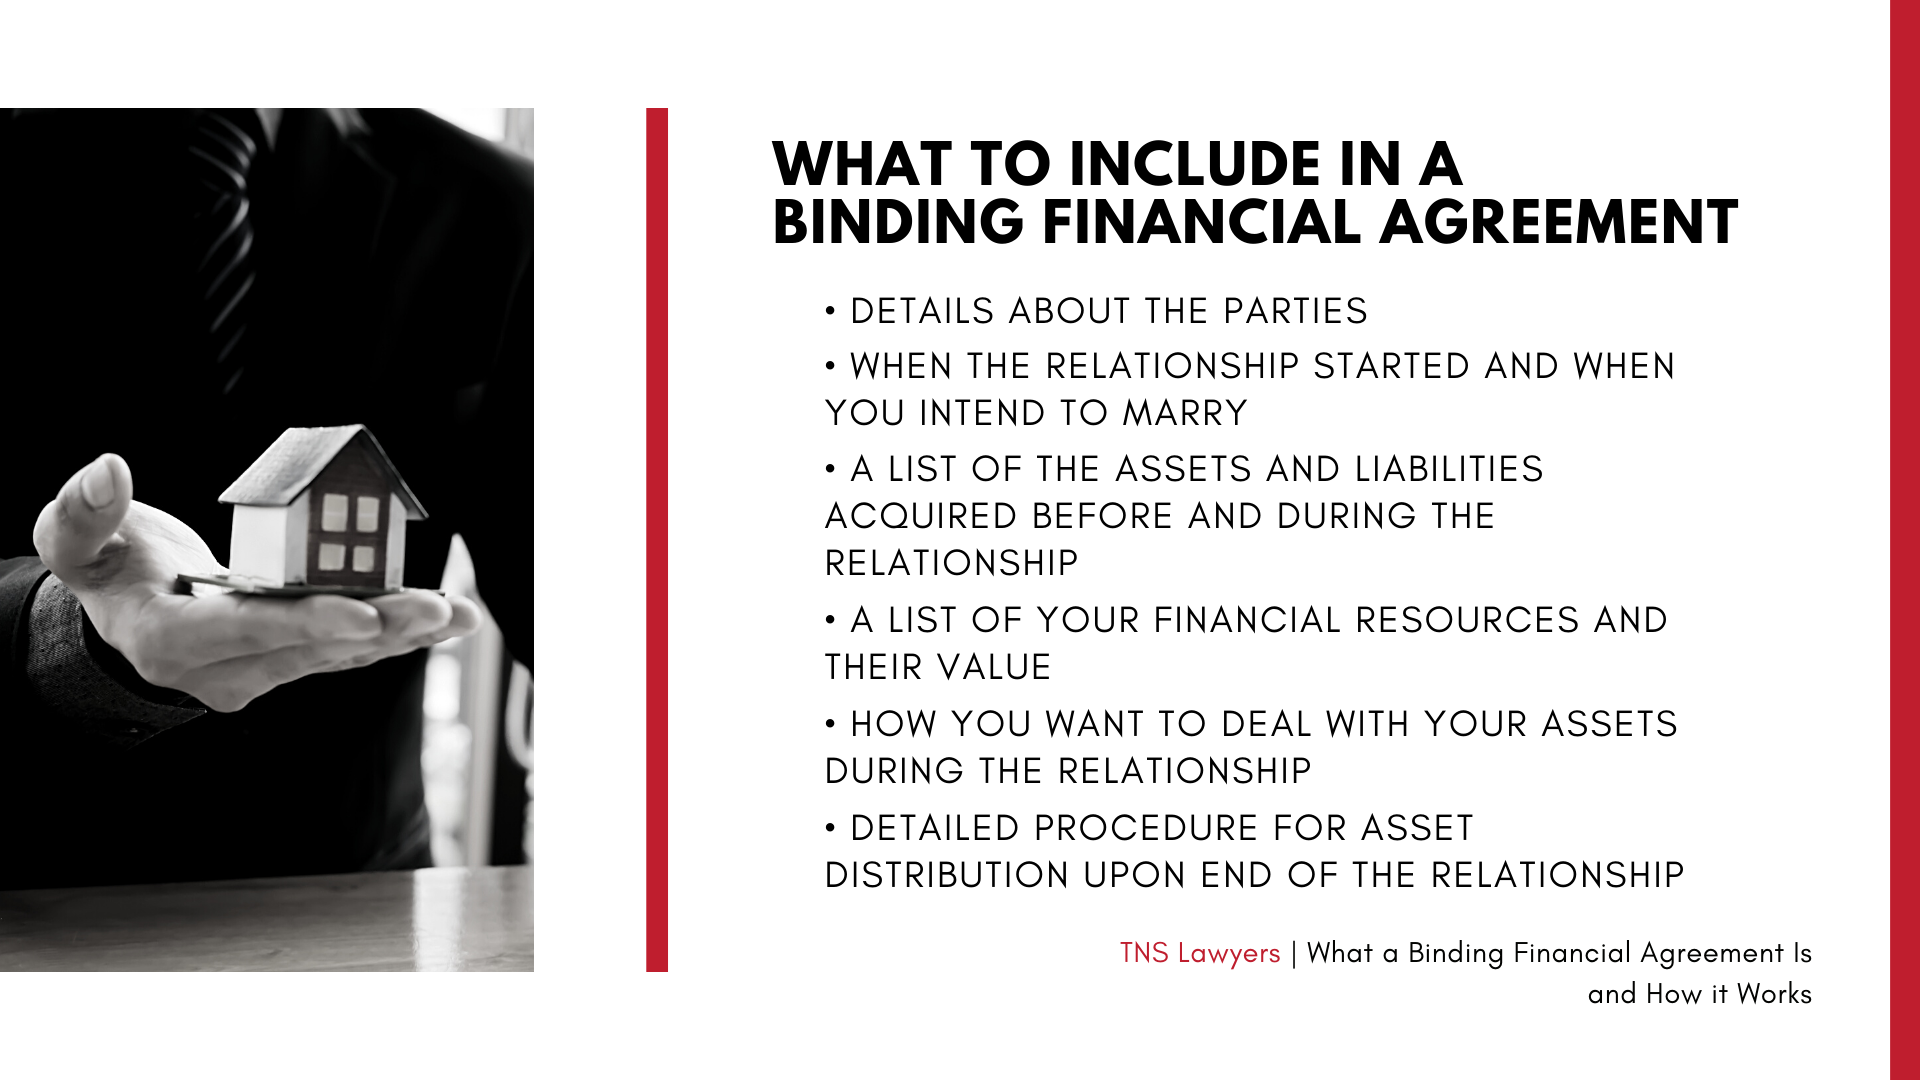 what you should include in a binding financial agreement